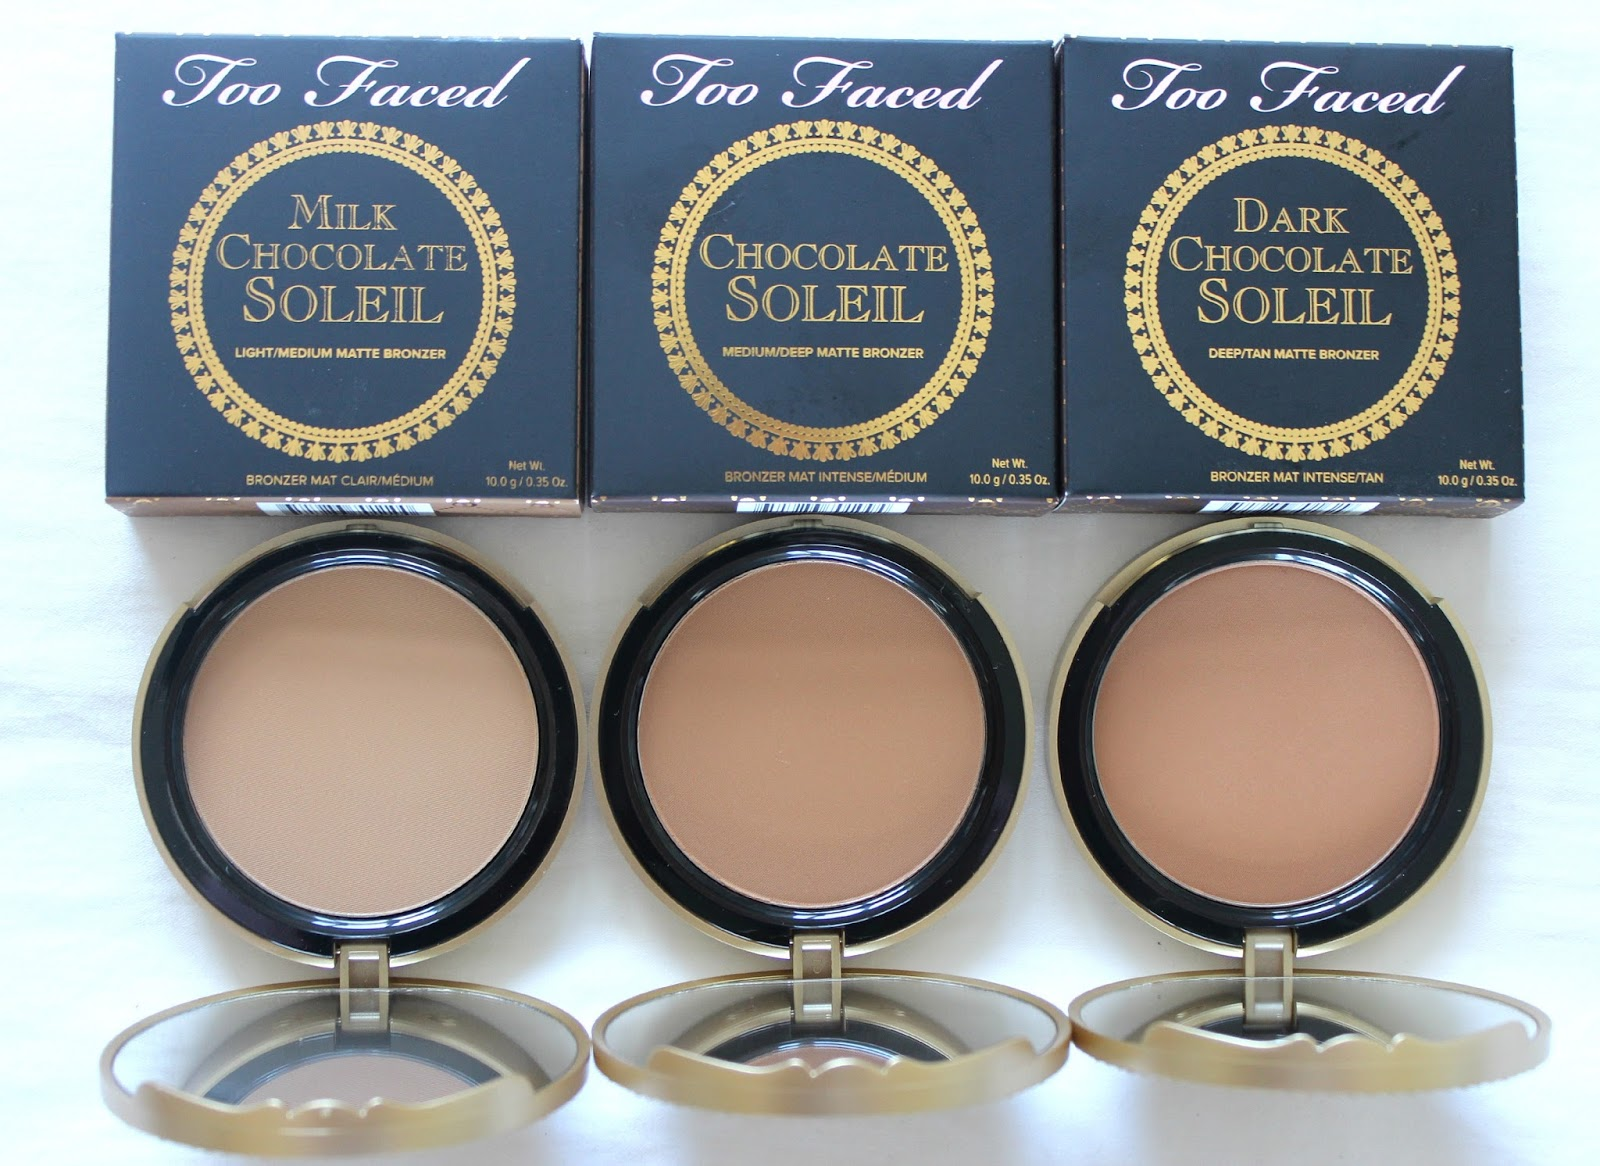 Ellie's Ramblings: Too Faced Bronzers